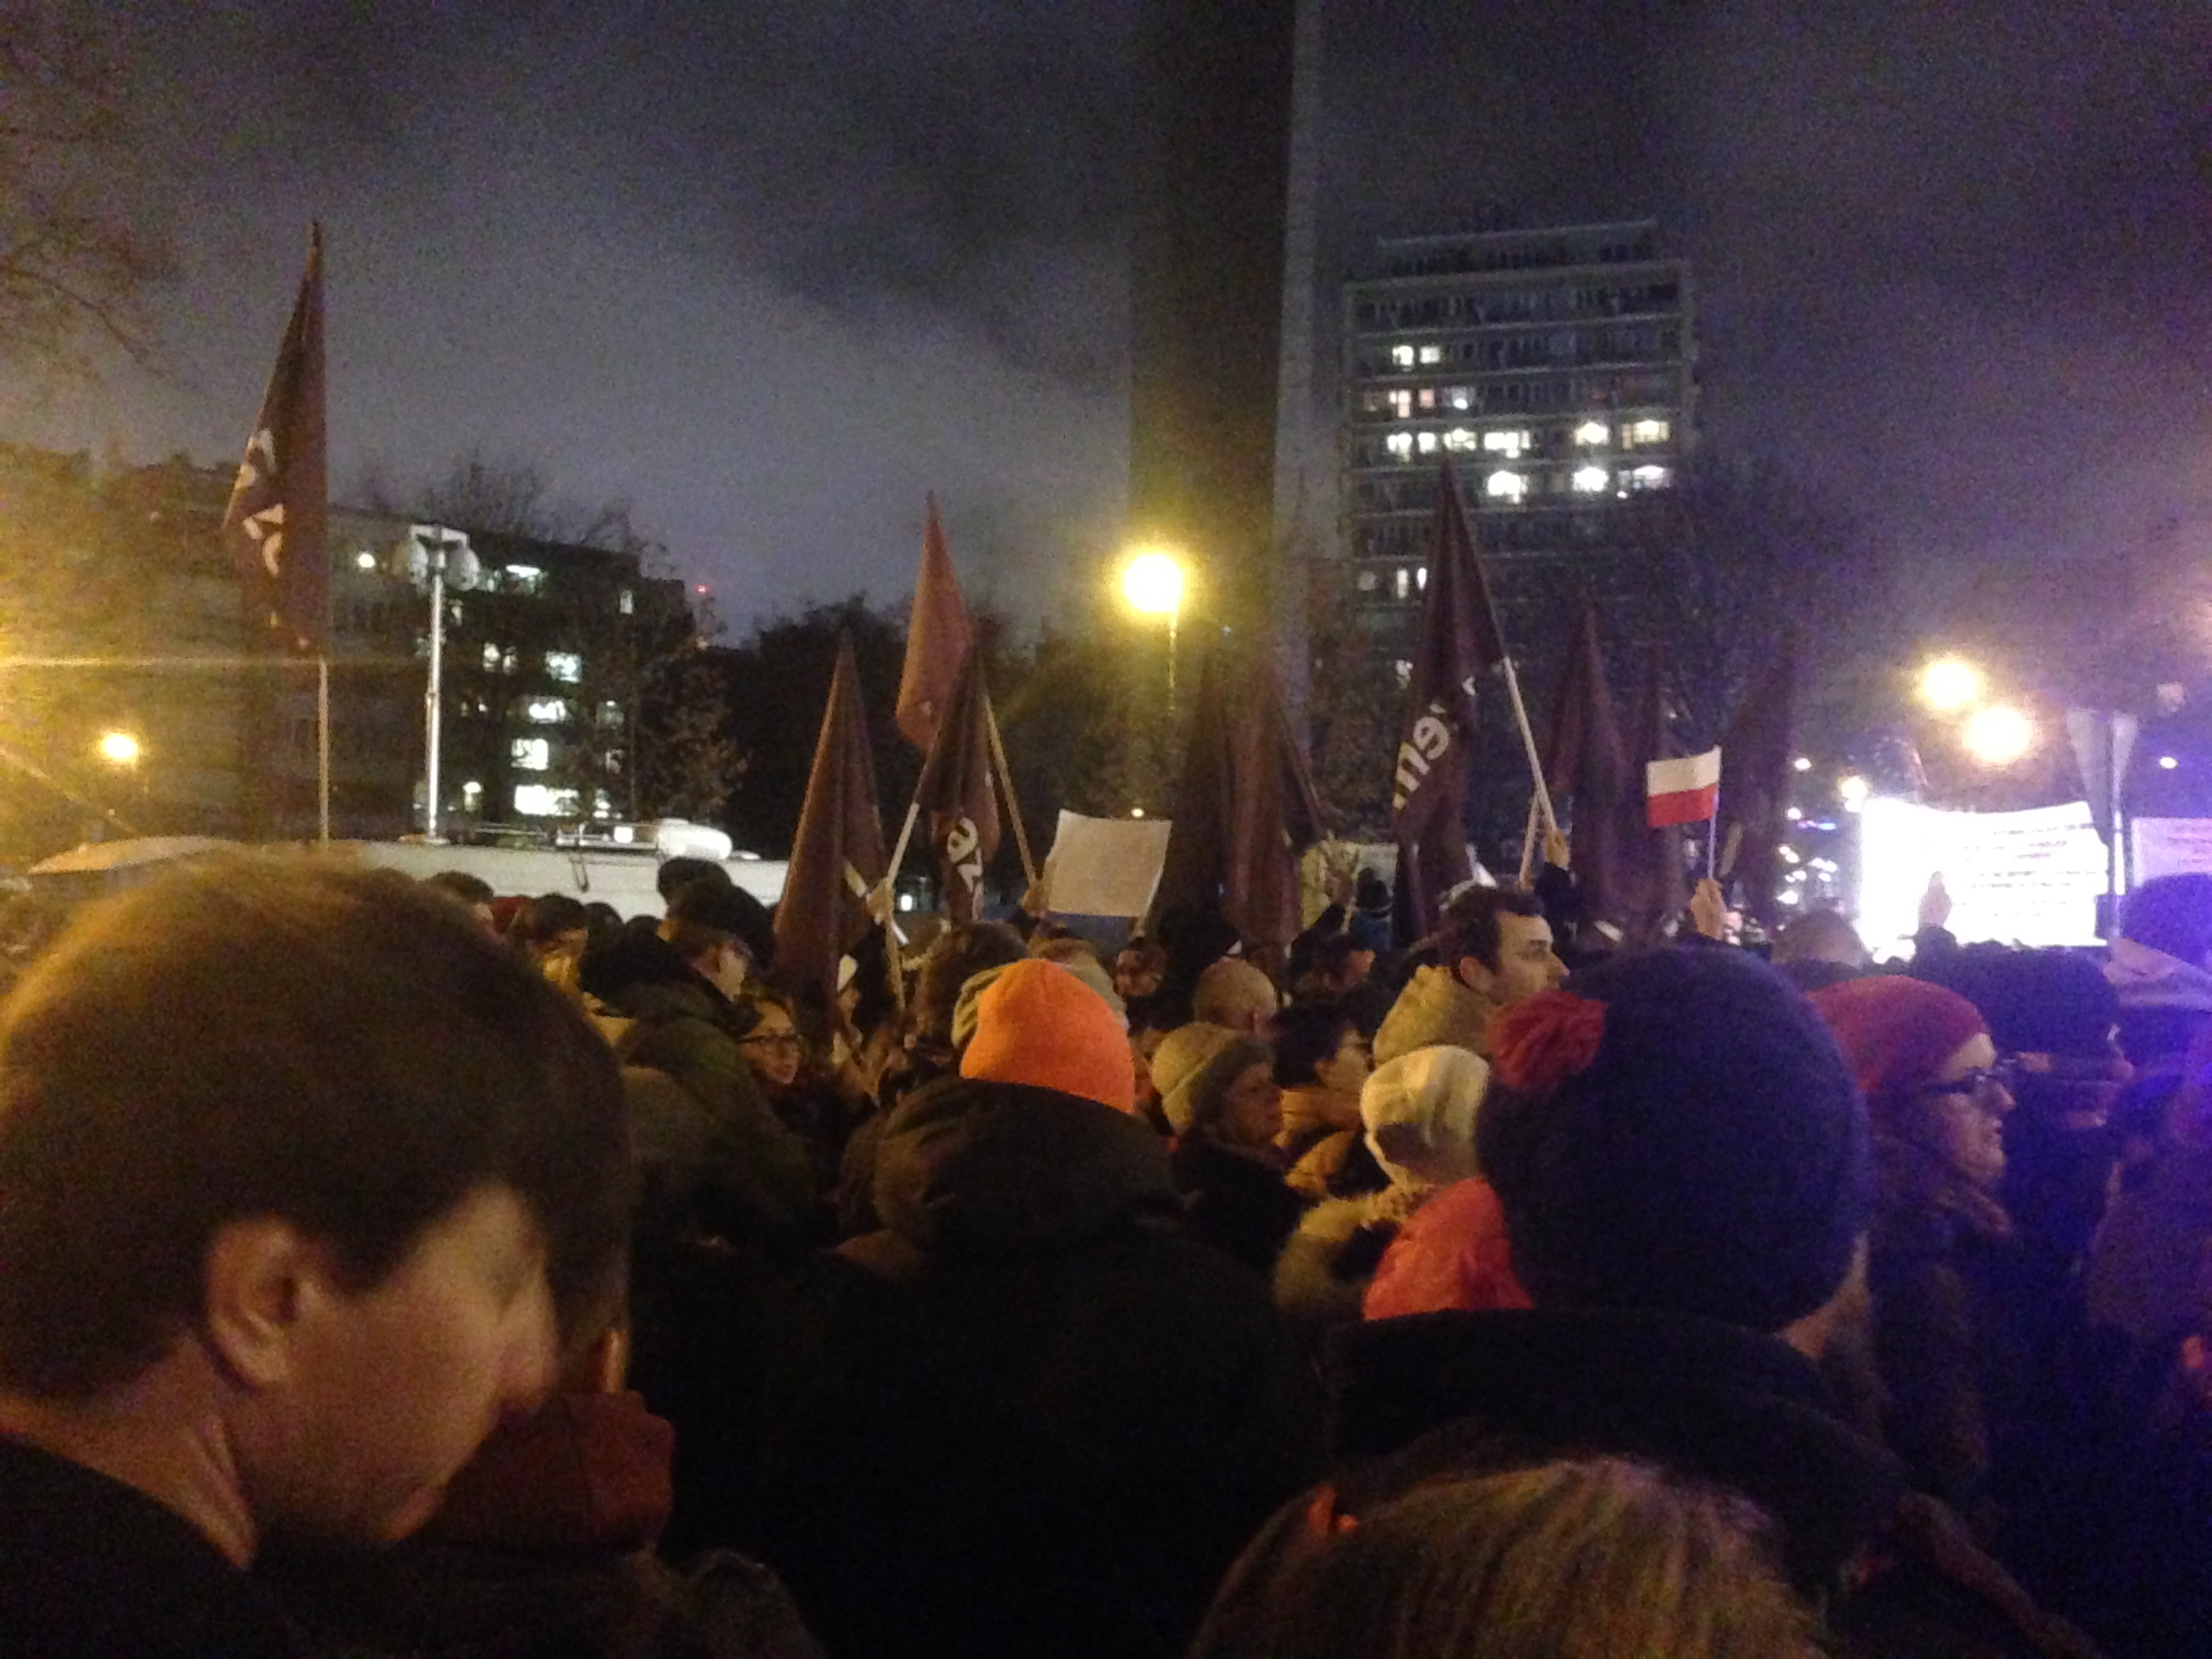 Protest in front of the Parliament building. December 2nd 2015, Photo by Anna Gotowska CC 2.0